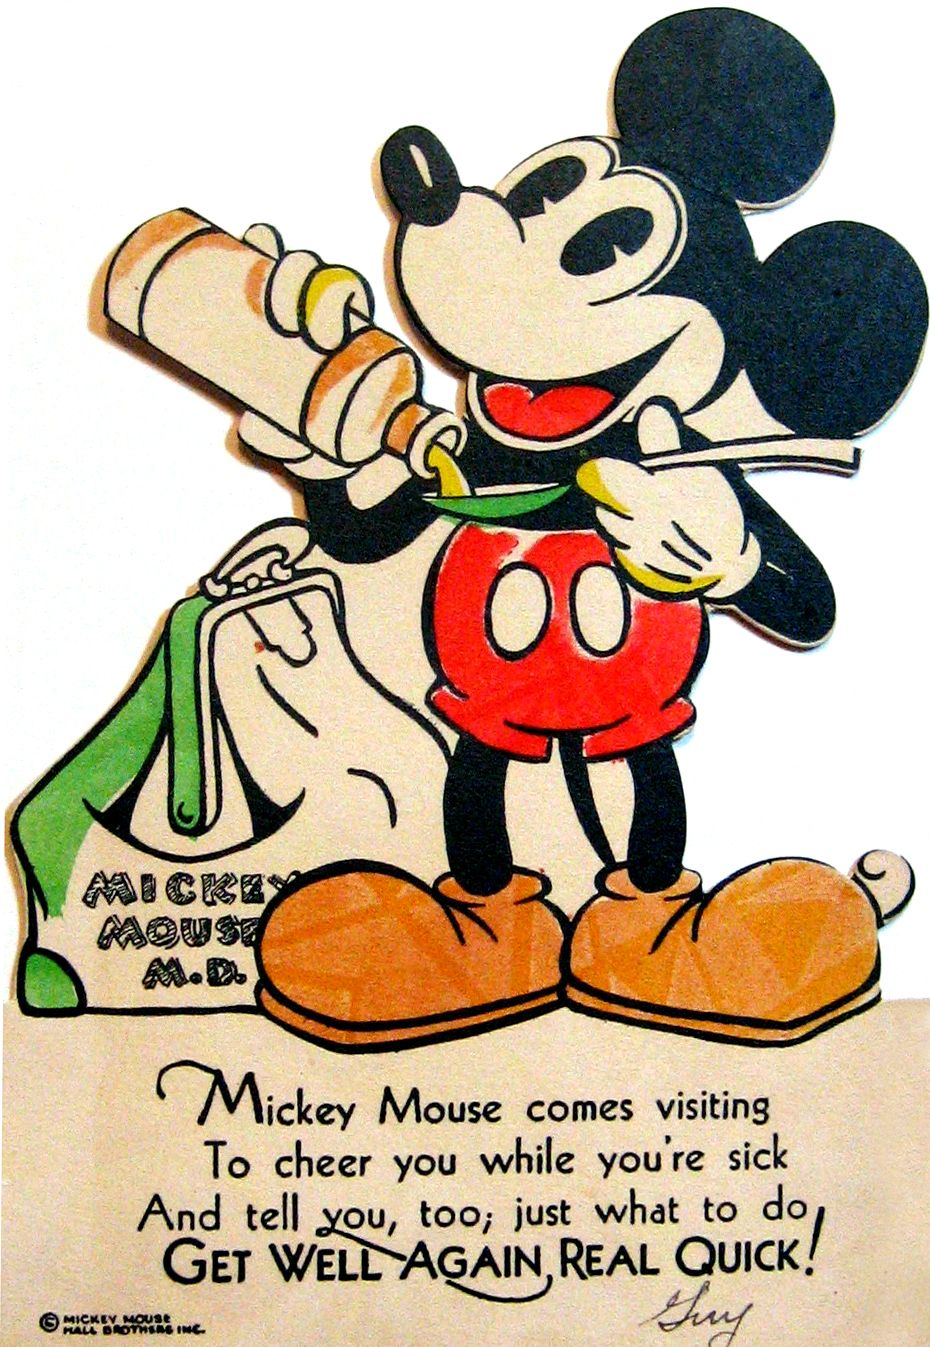 Mickey Mouse M D Totally Sending This Out When My Friends Are Sick Mickey Mouse Mickey Vintage Mickey